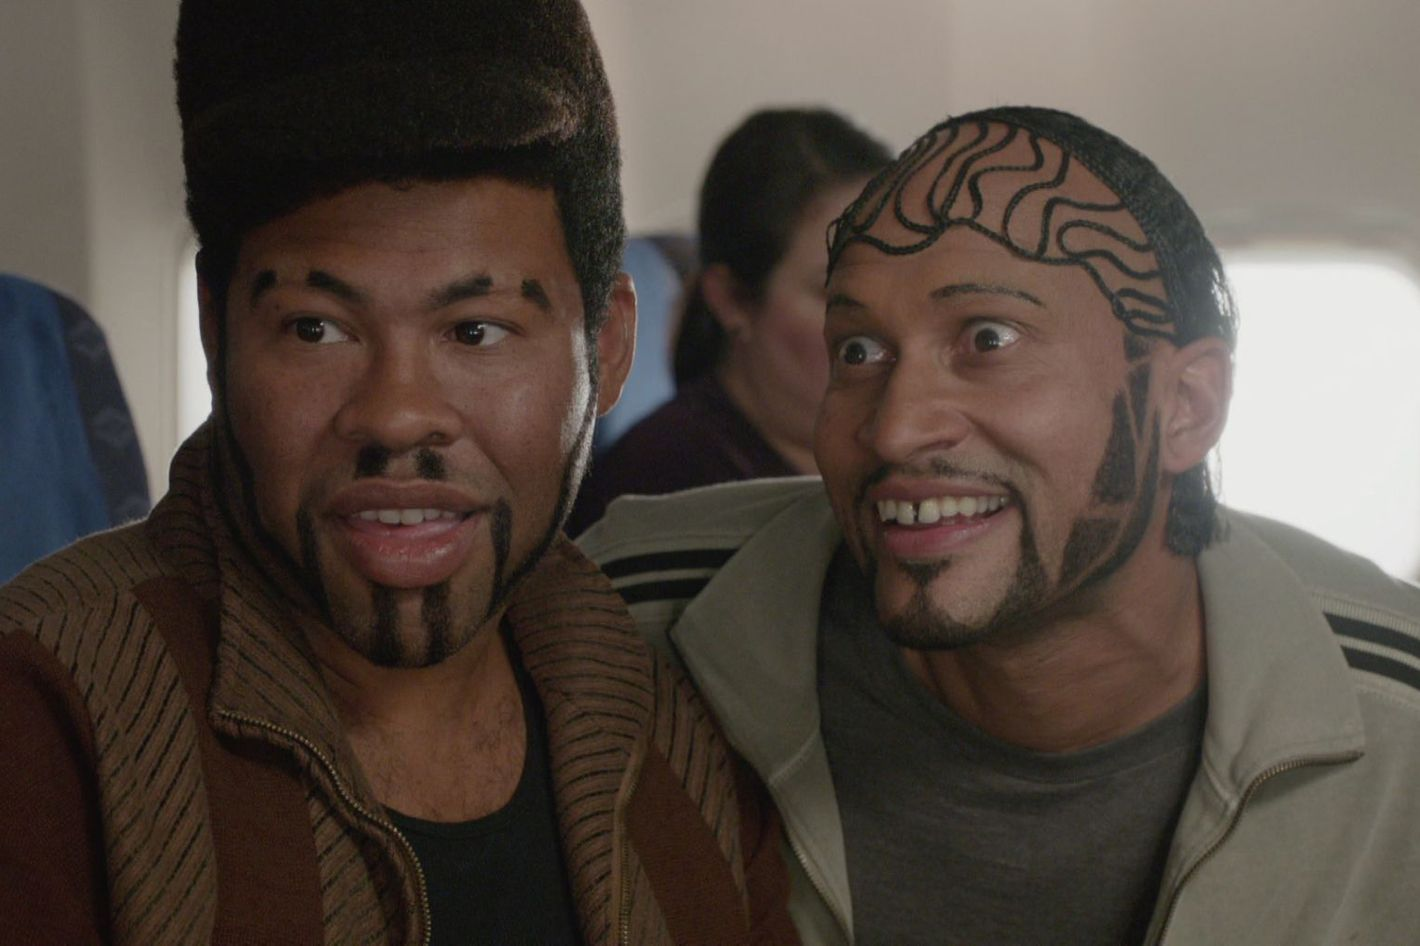 39 comedians and comic actors recall their favorite key & peele sketches